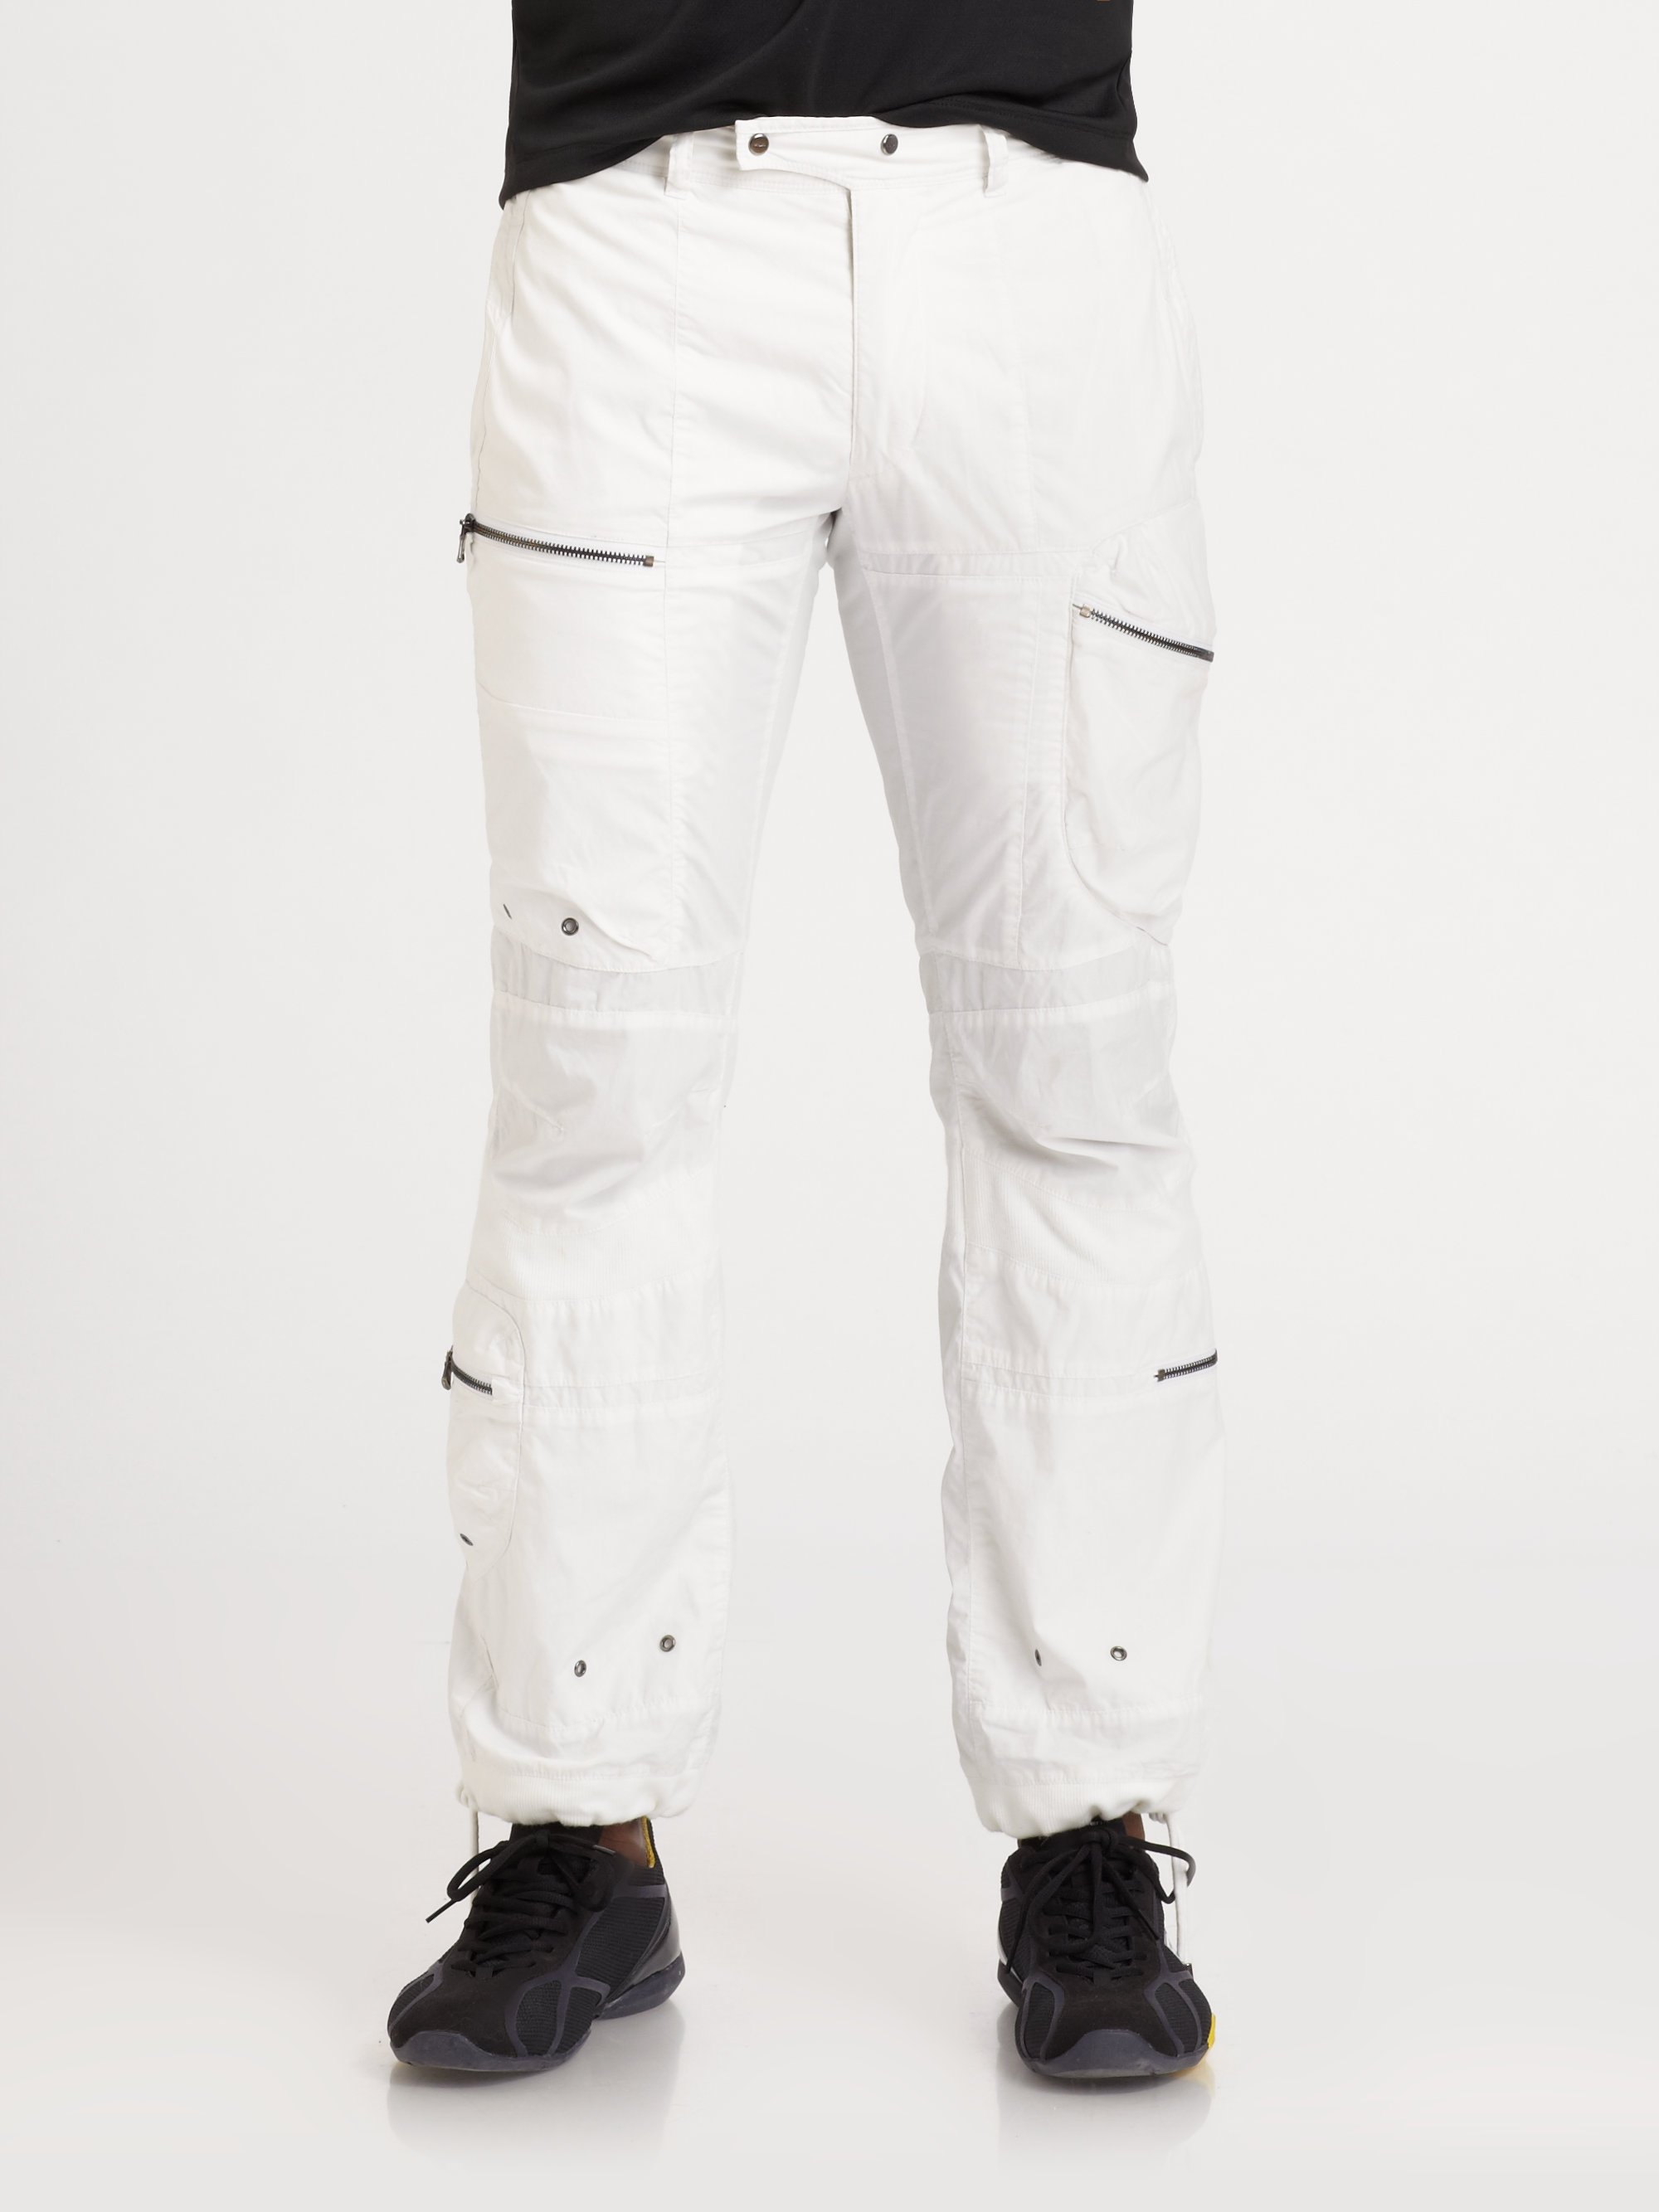 Rlx ralph lauren Space Cargo Pants in White for Men | Lyst